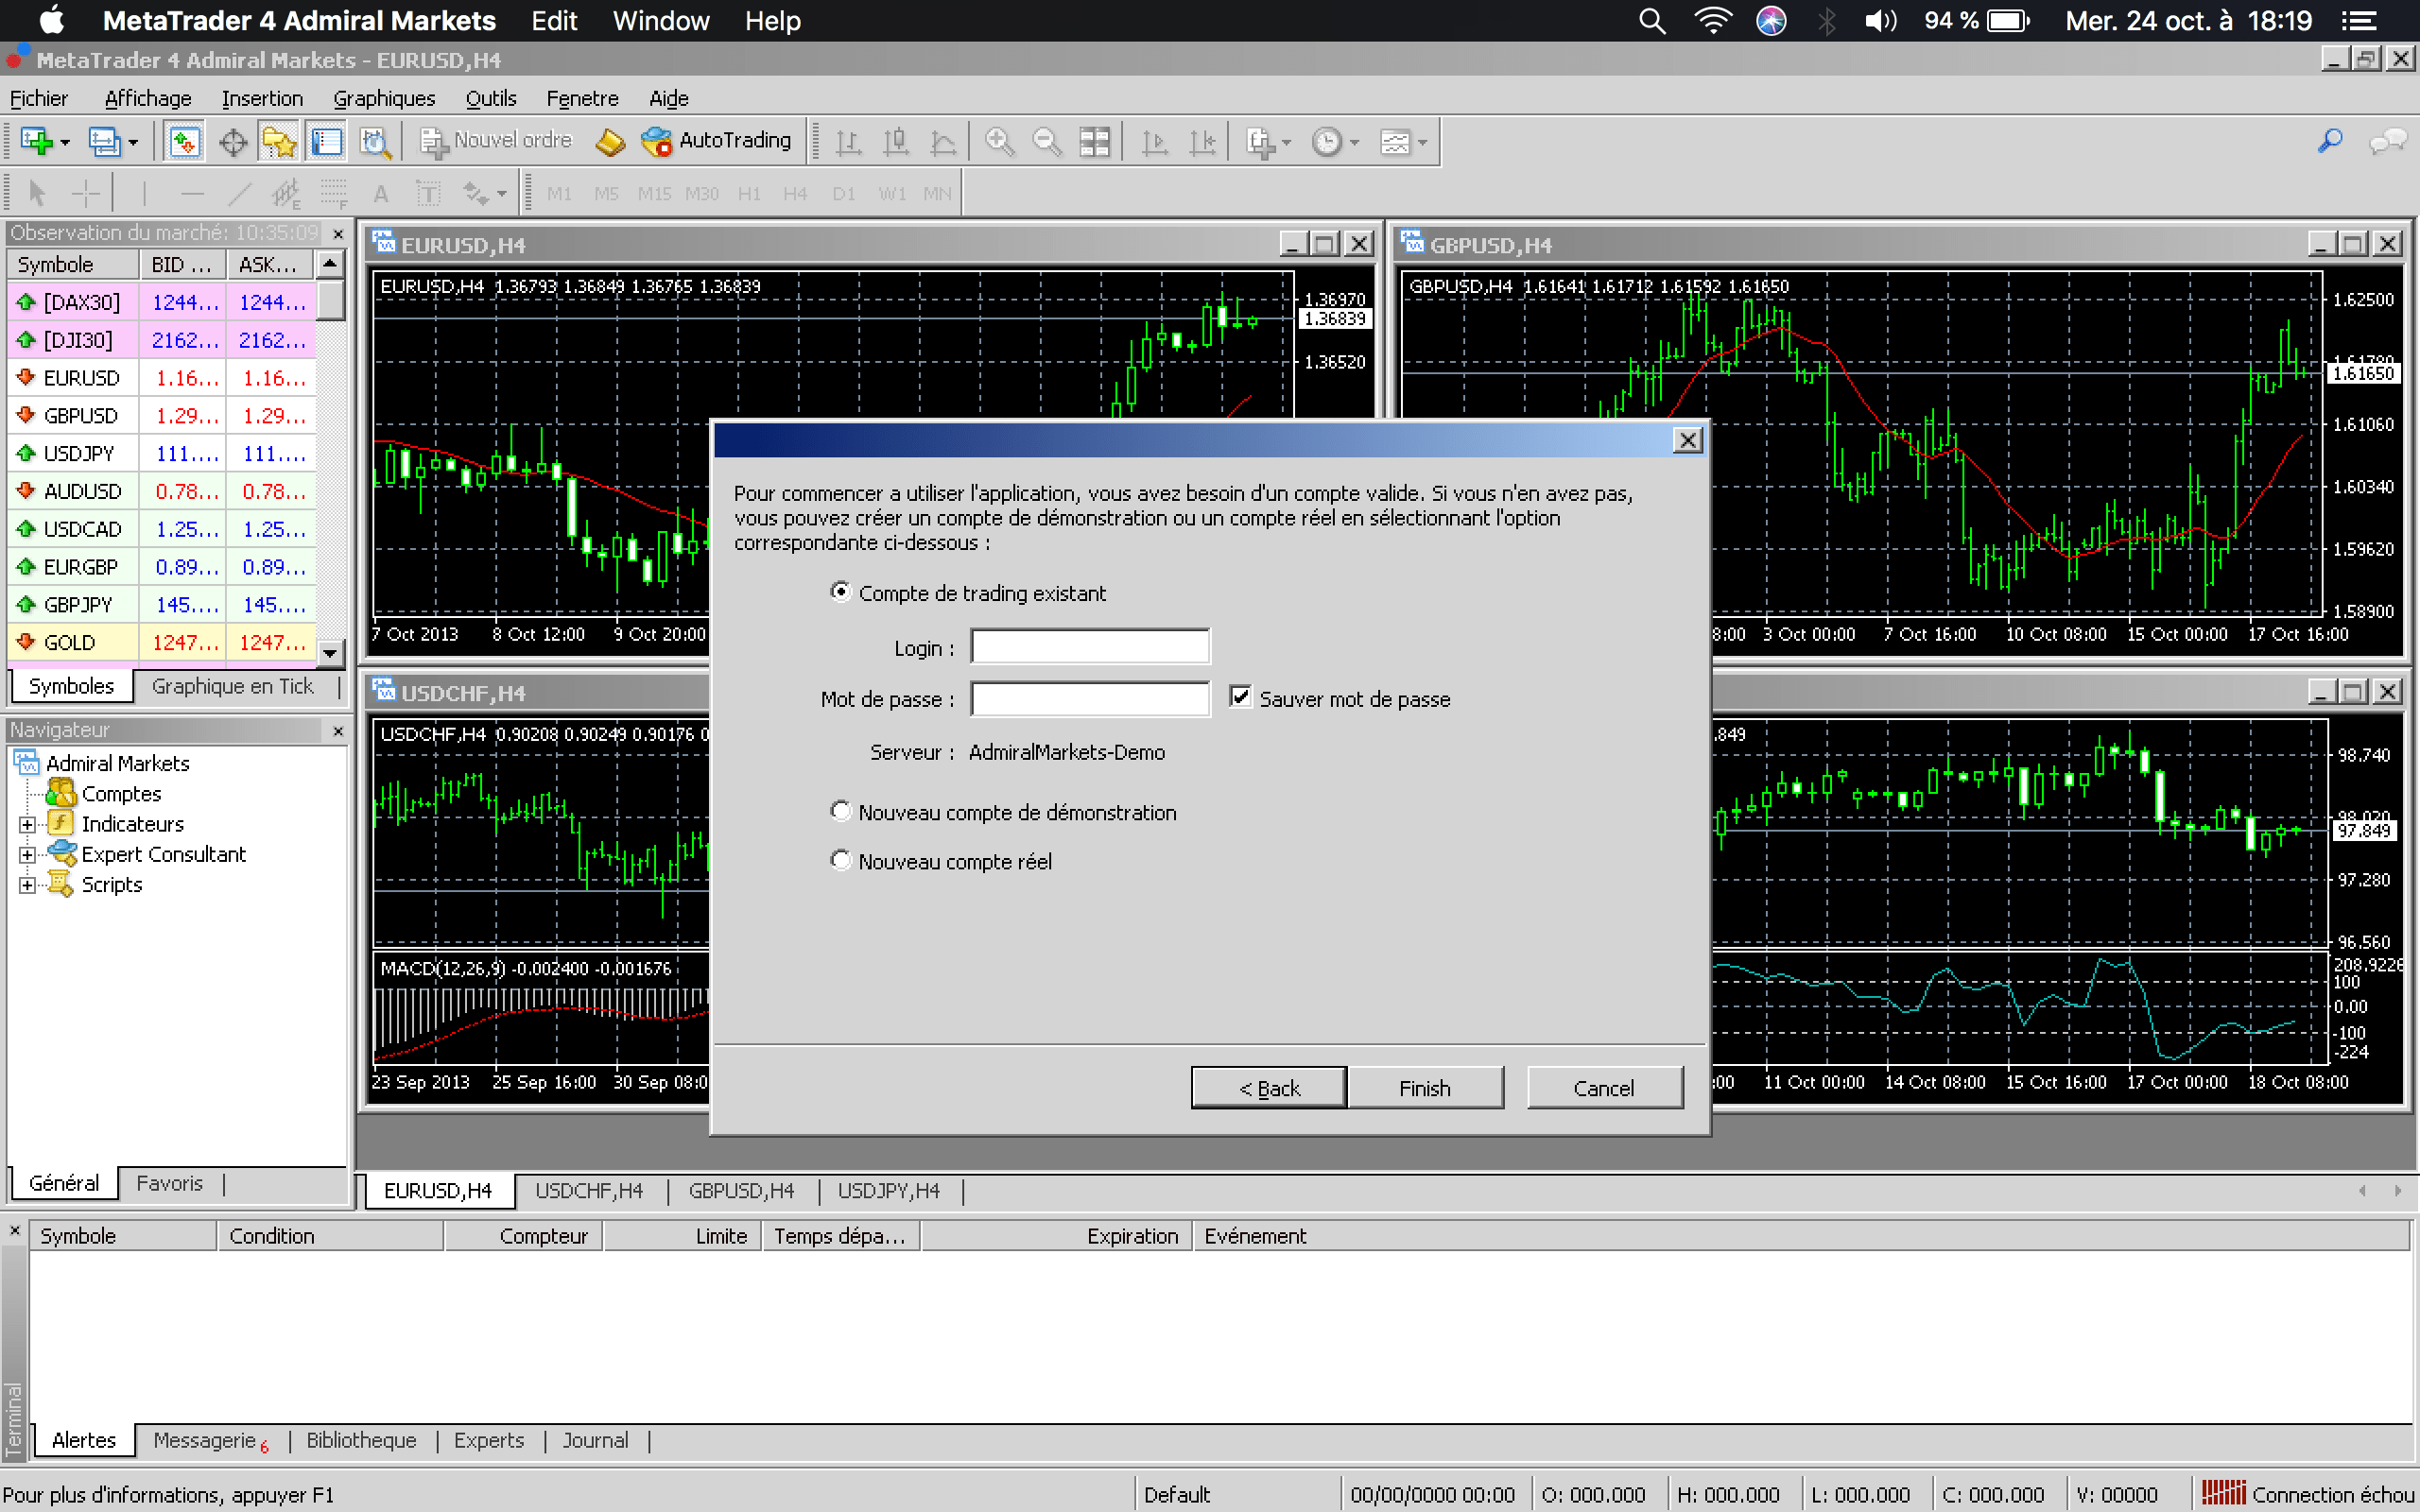 metatrader 4 macbook